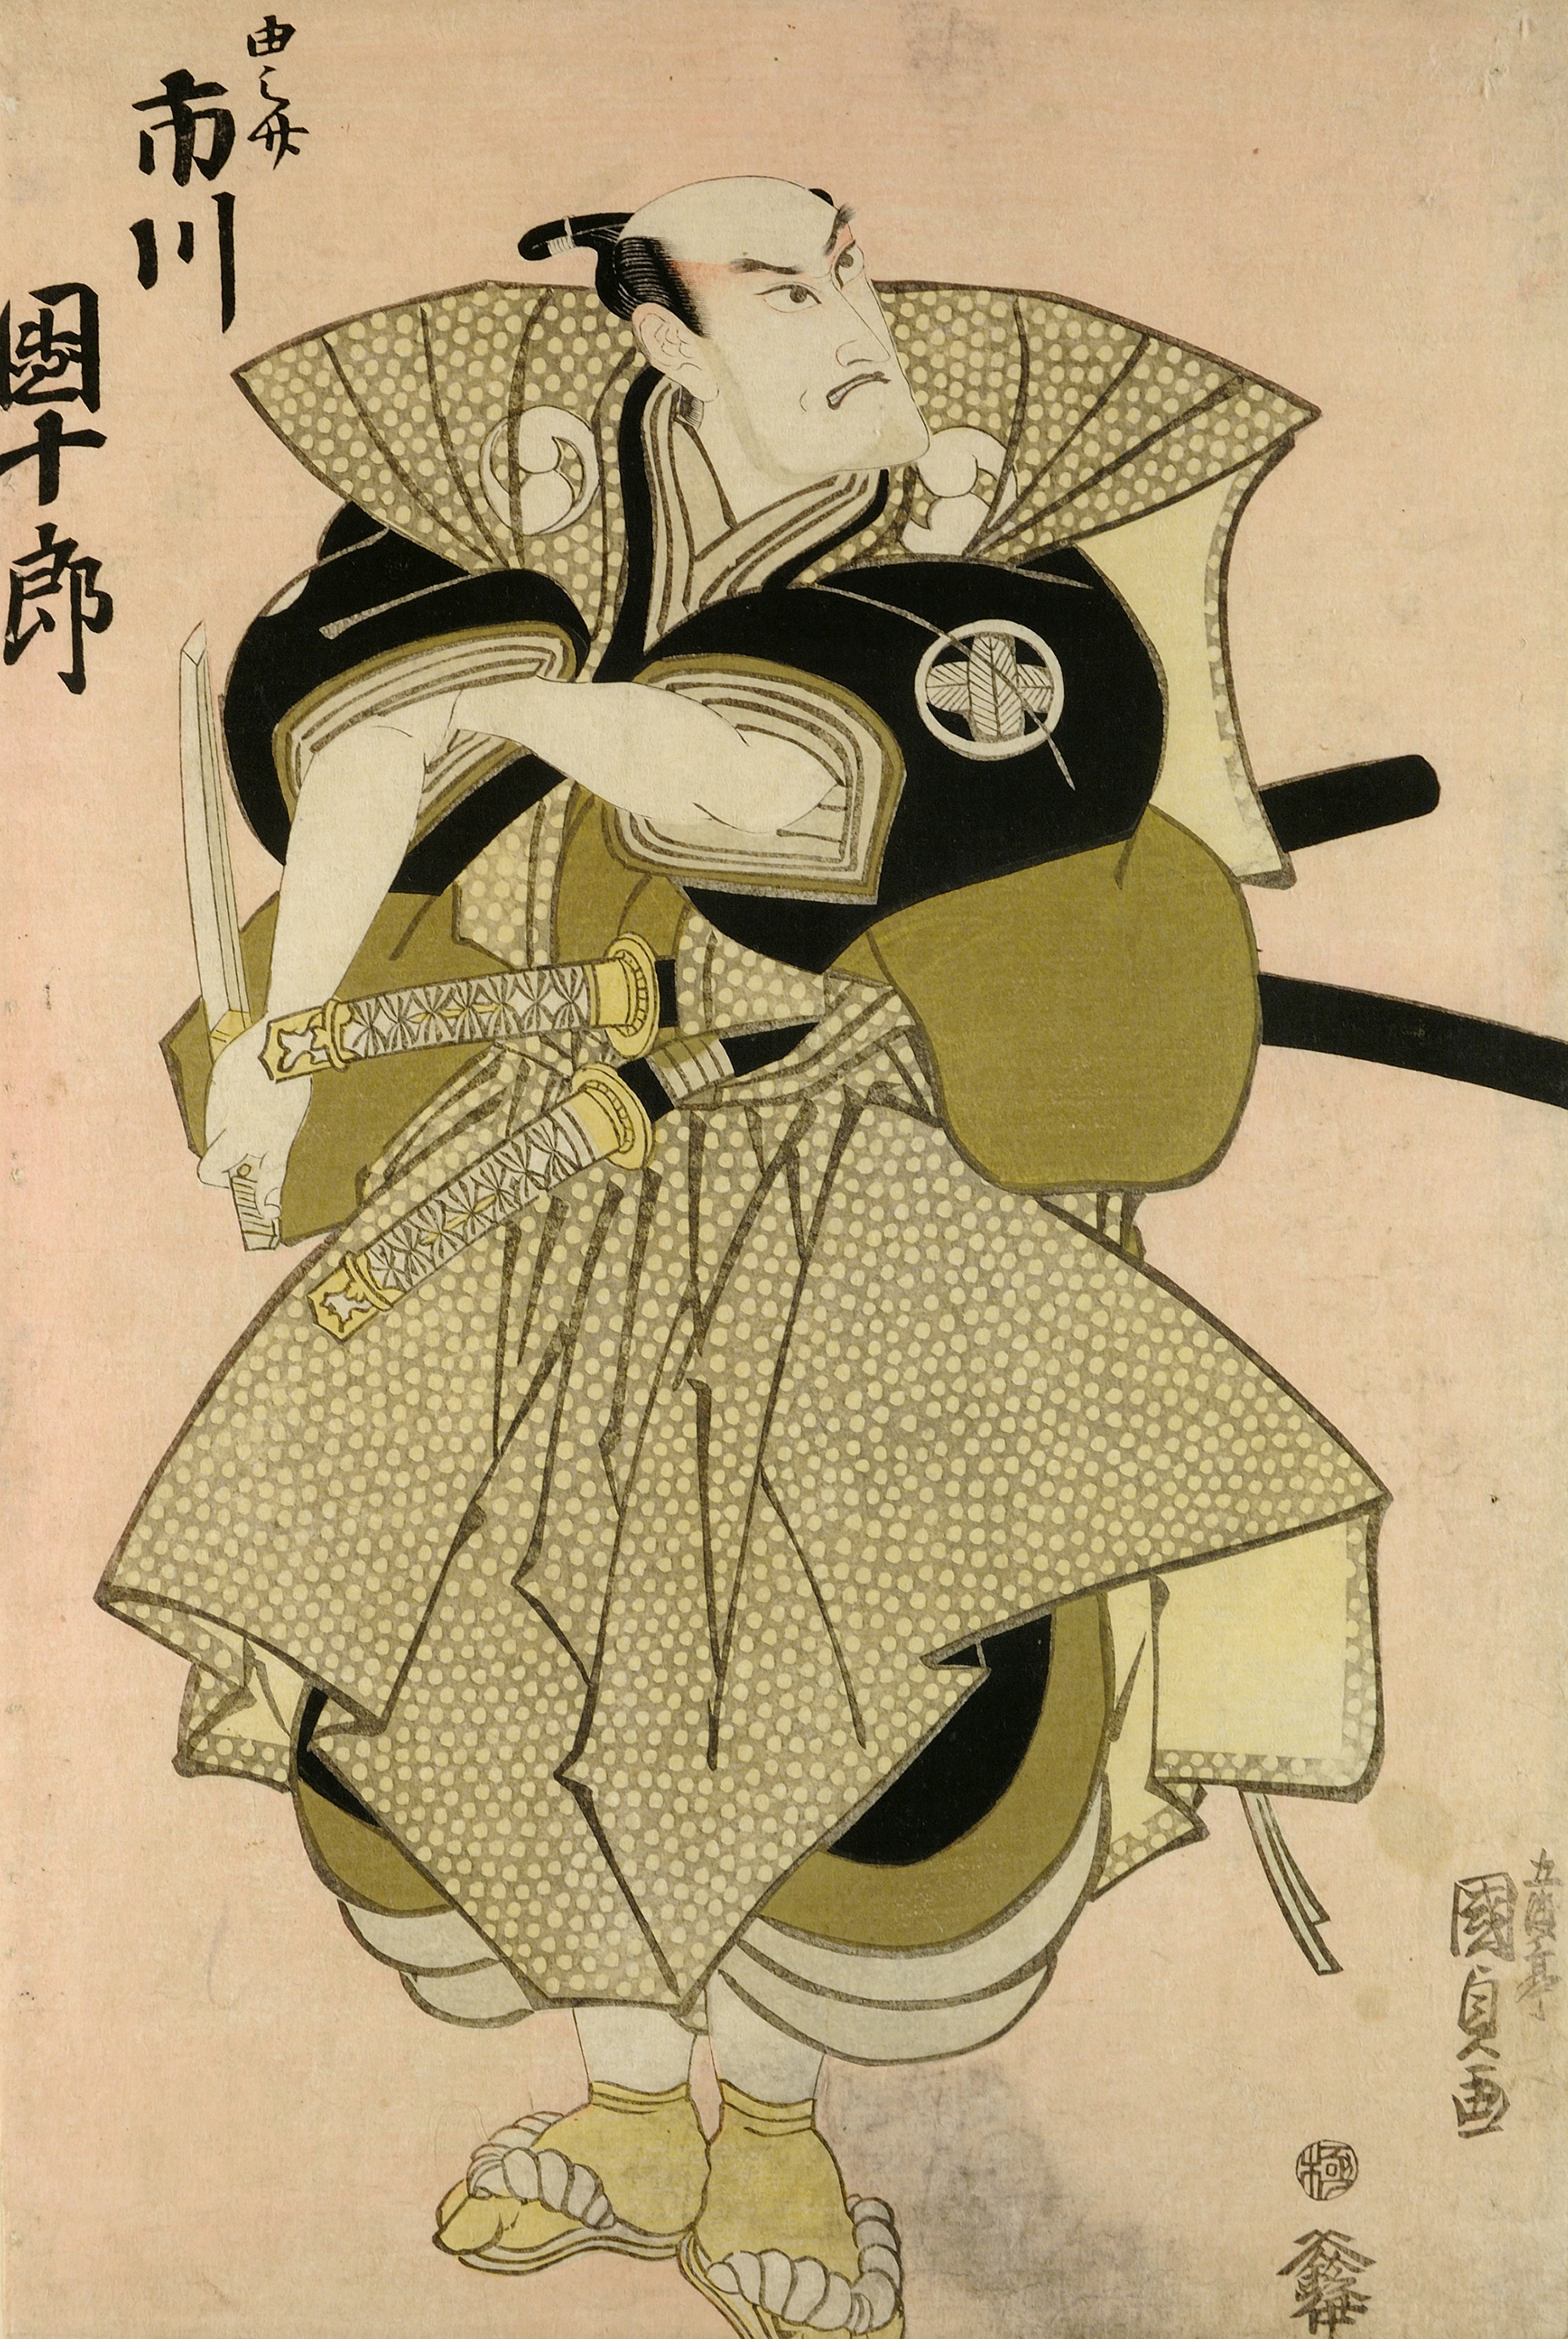 A colour woodblock print of a male samurai. He wears elaborate clothes with spotted textiles, and wears two swords. His hair is tied back and he is making a fierce expression.